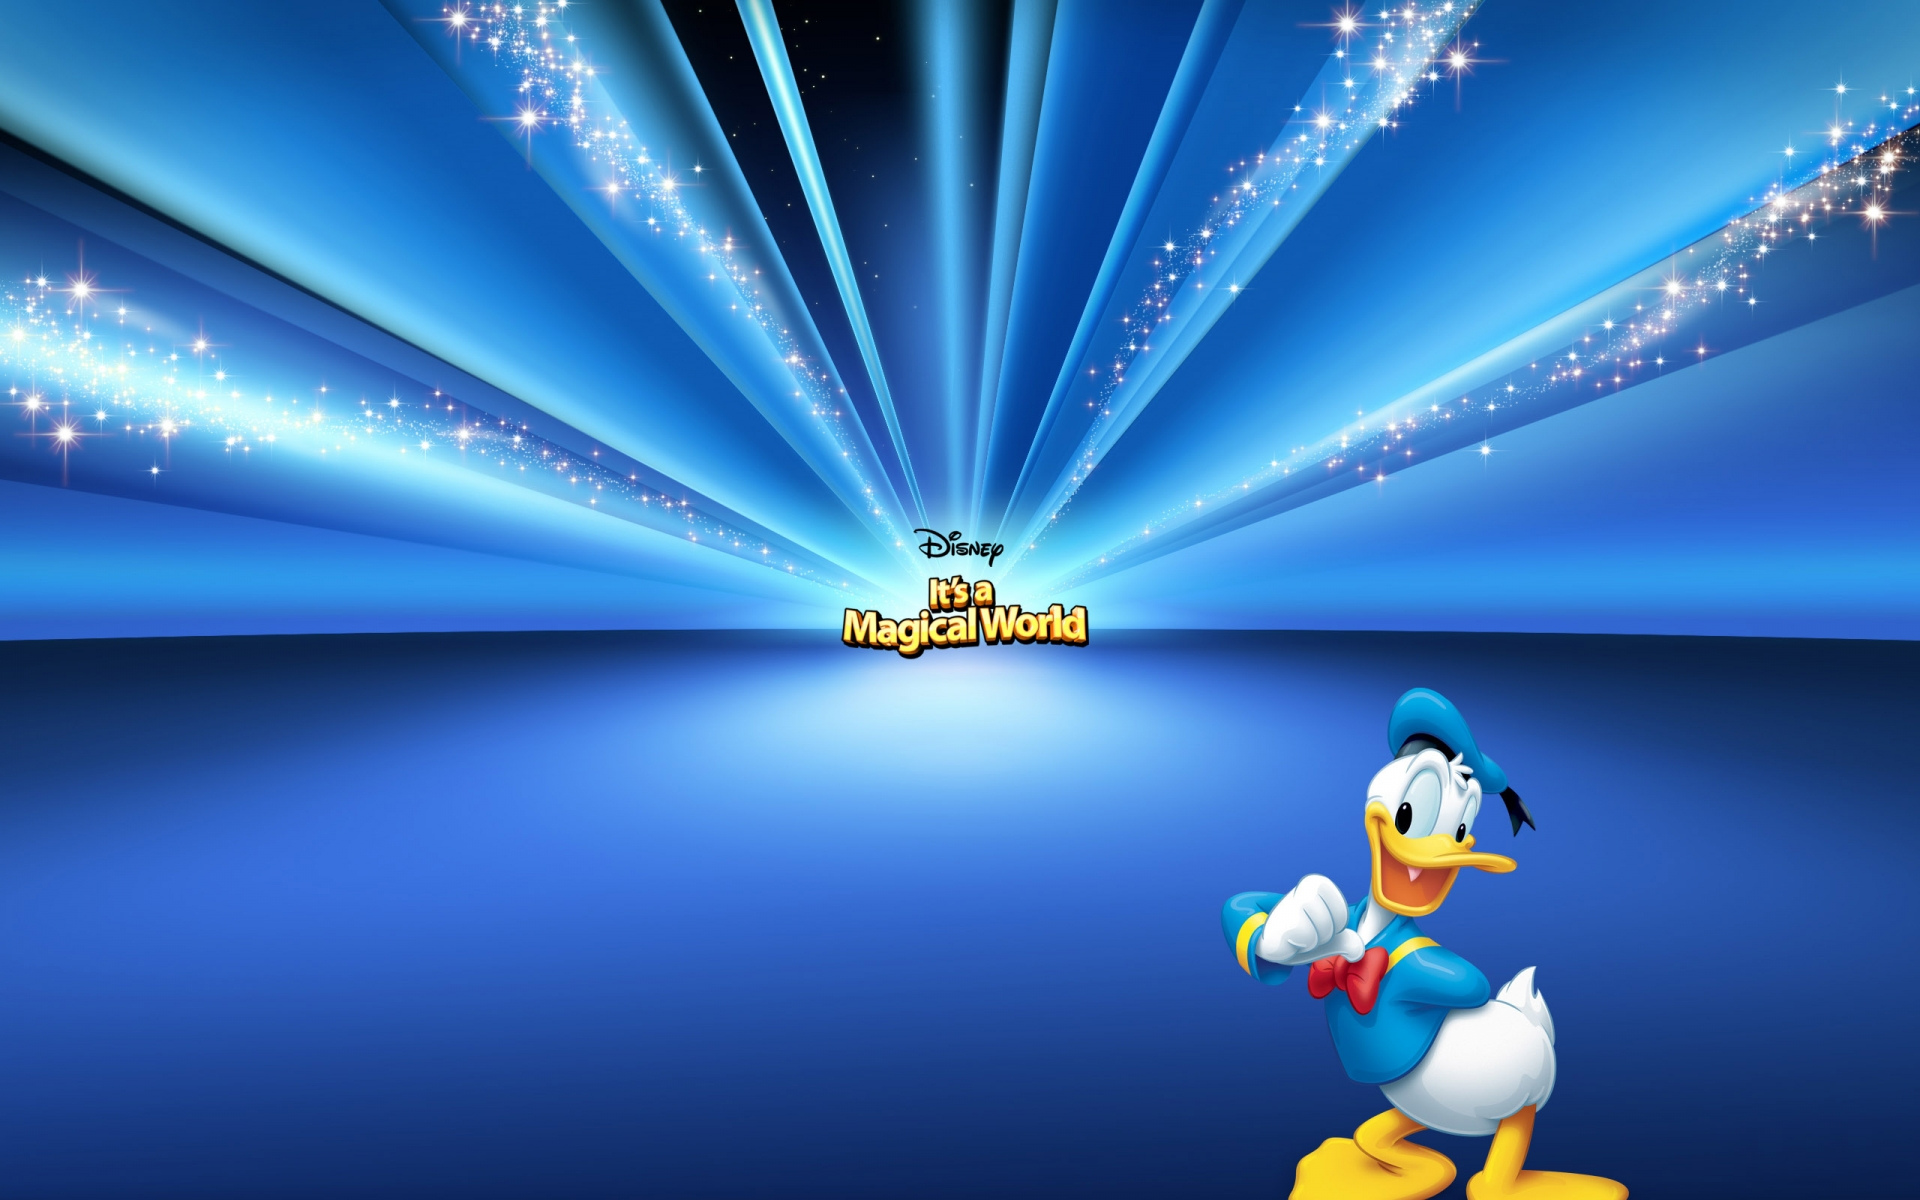 1920x1200 Donald Duck desktop PC and Mac wallpaper 1920x1200